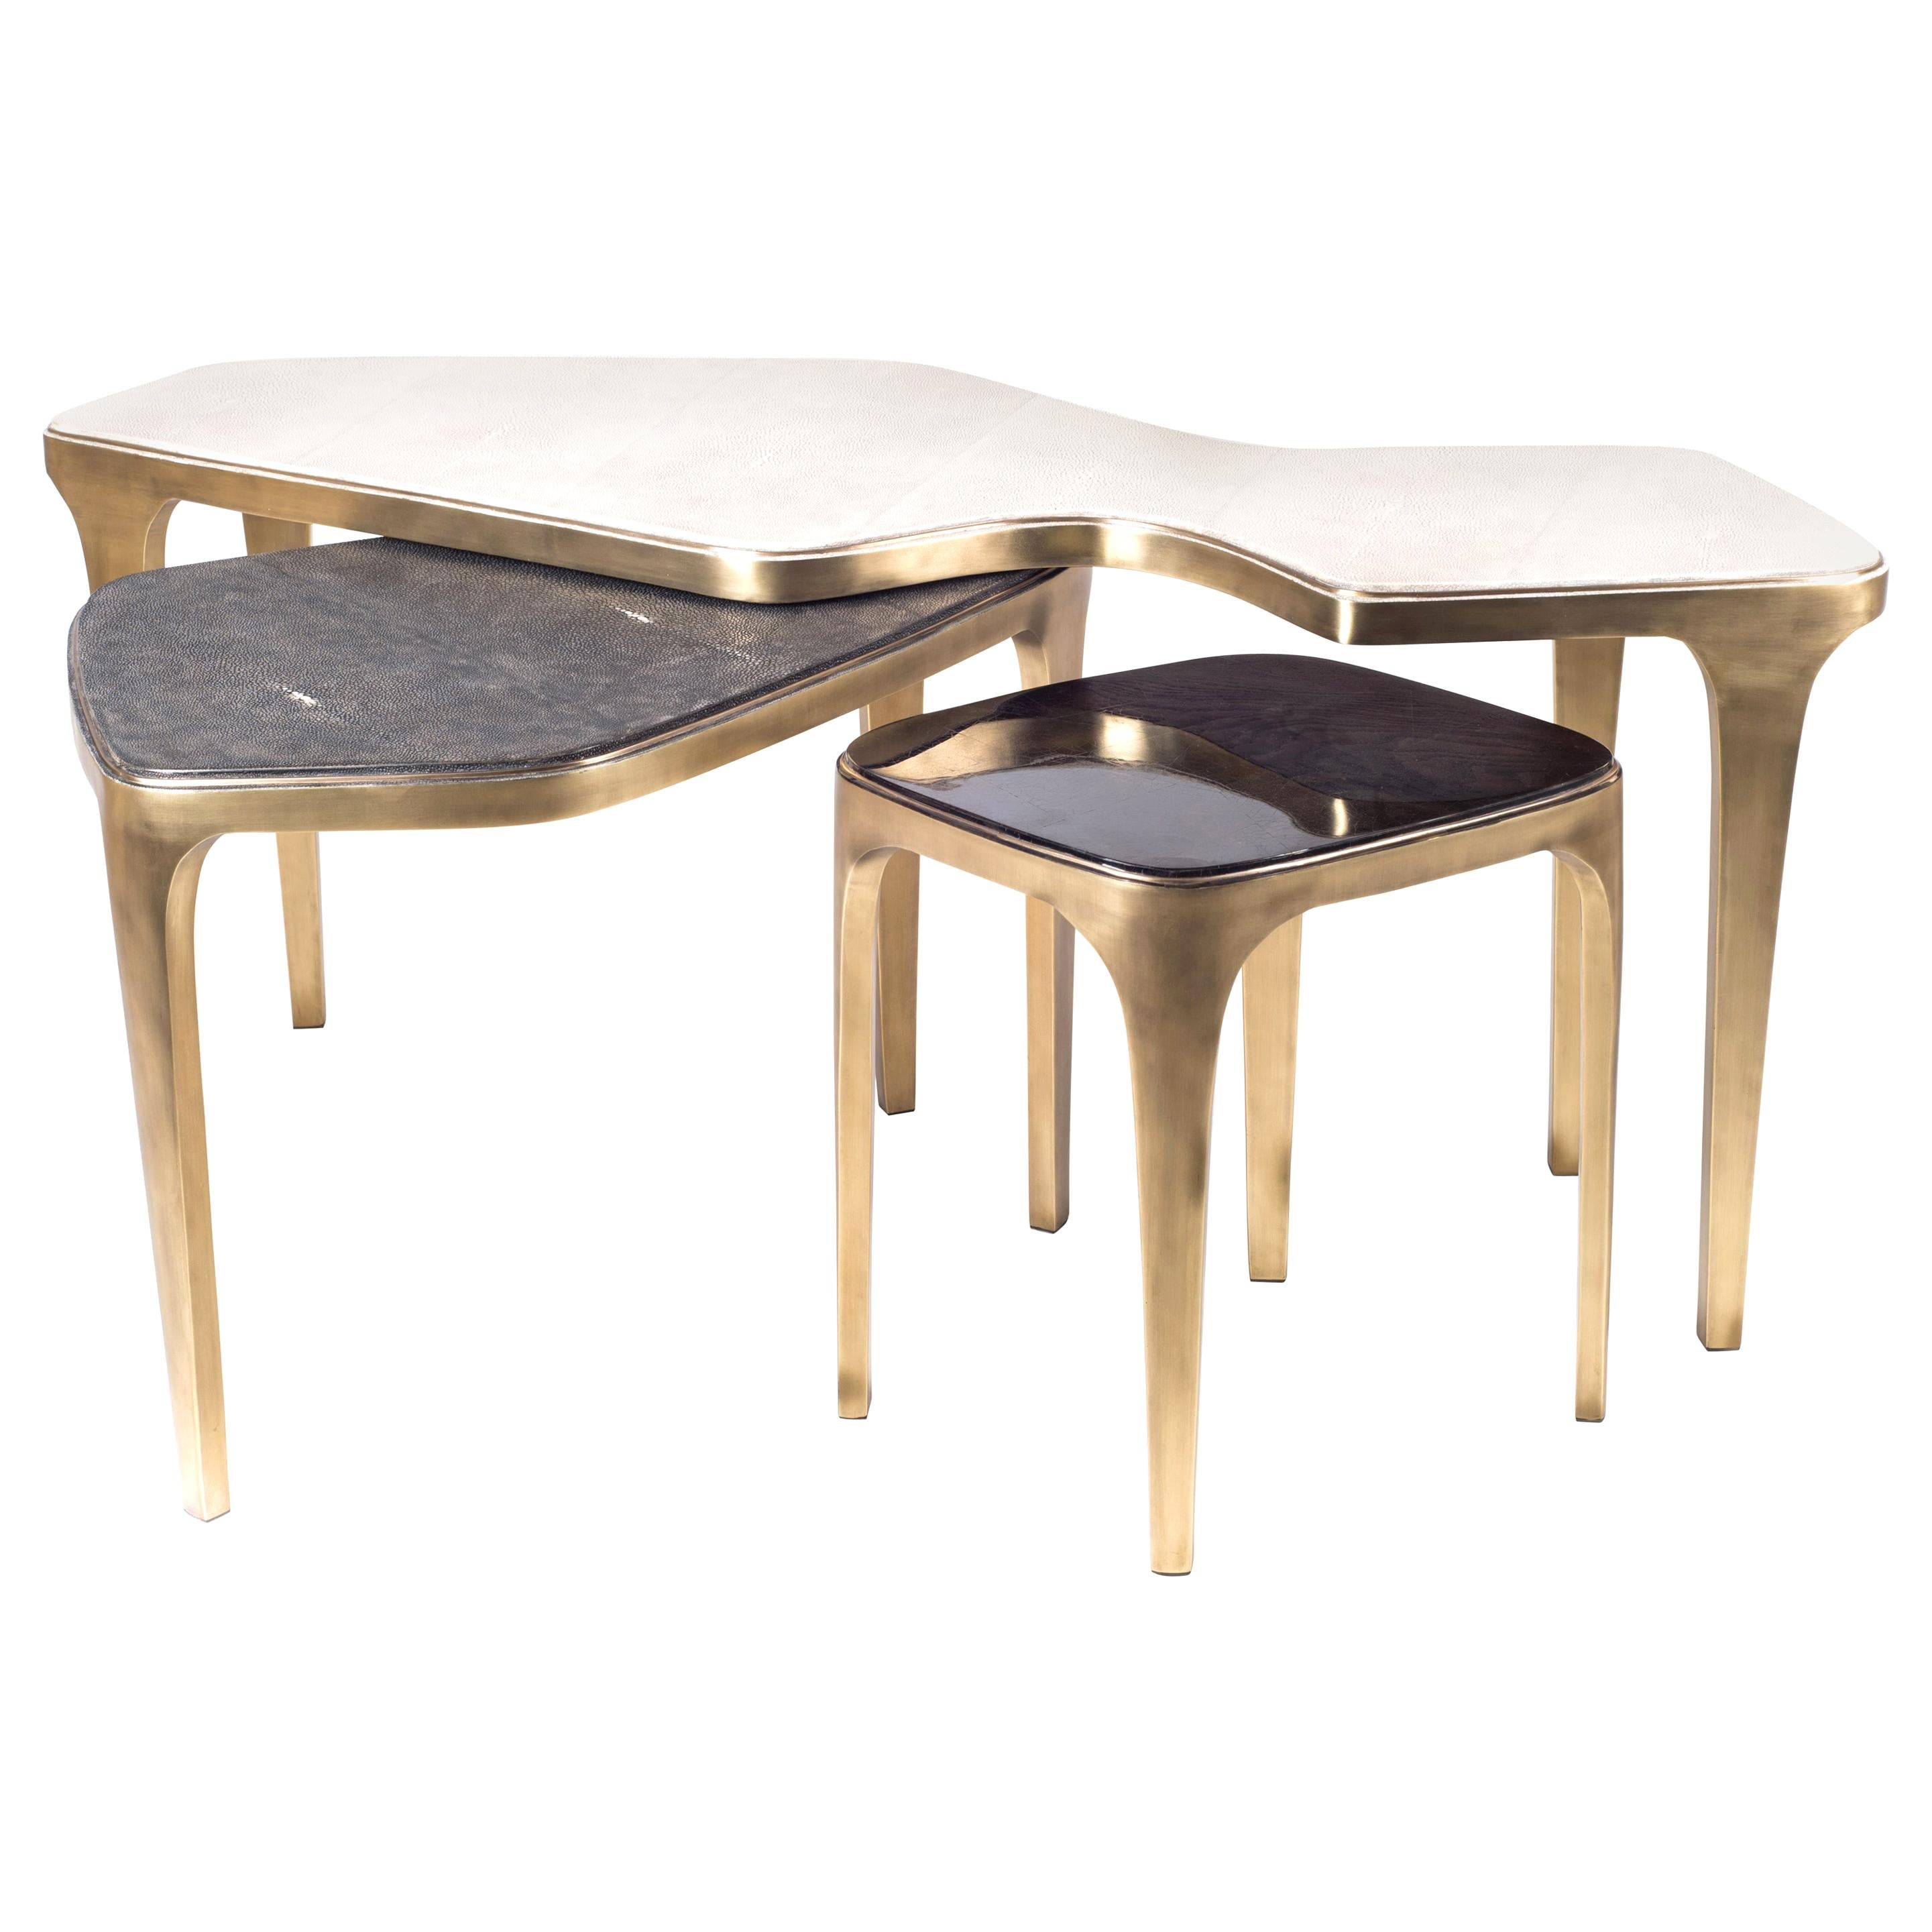 Set of 3 Cosmos Nesting Coffee Tables in Shagreen, Shell & Brass R&Y Augousti